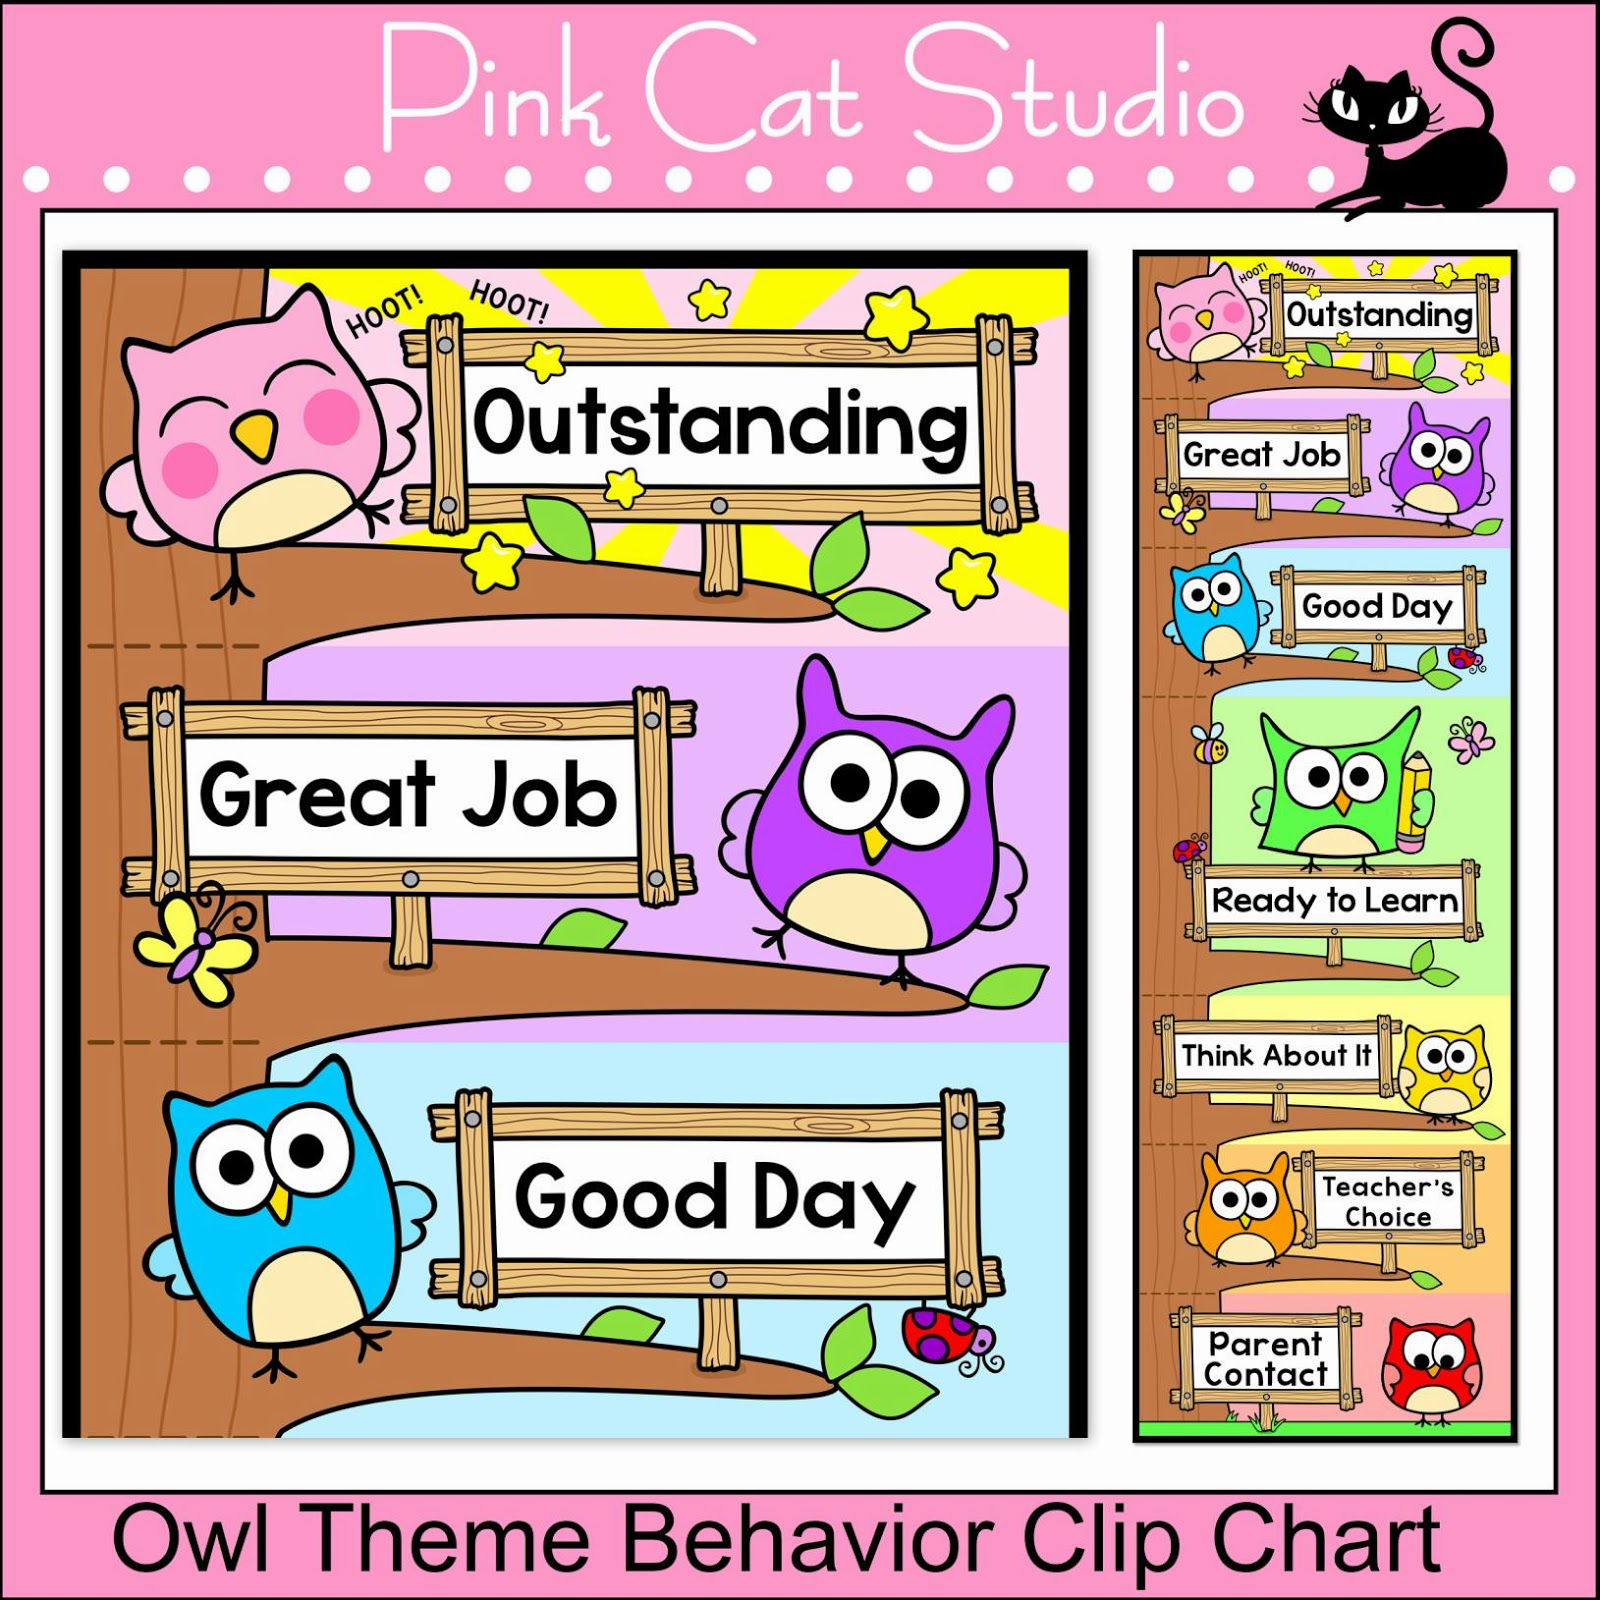 http://www.teacherspayteachers.com/Product/Owl-Theme-Behavior-Clip-Chart-Editable-Back-to-School-Decor-782770